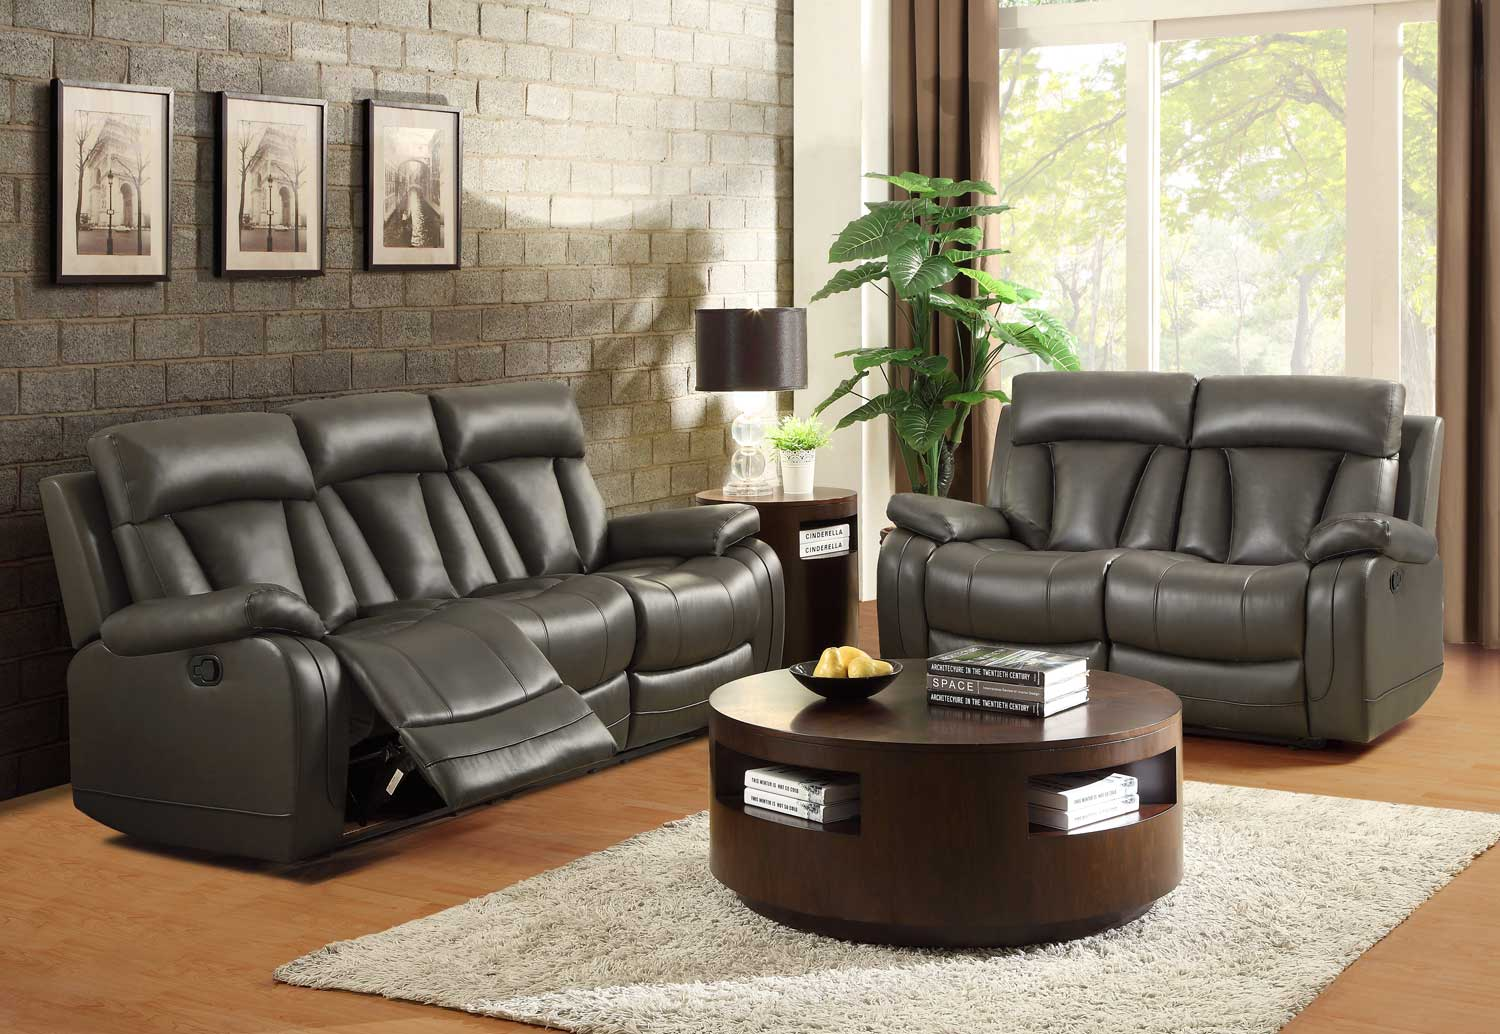 Gray Leather Reclining Furniture